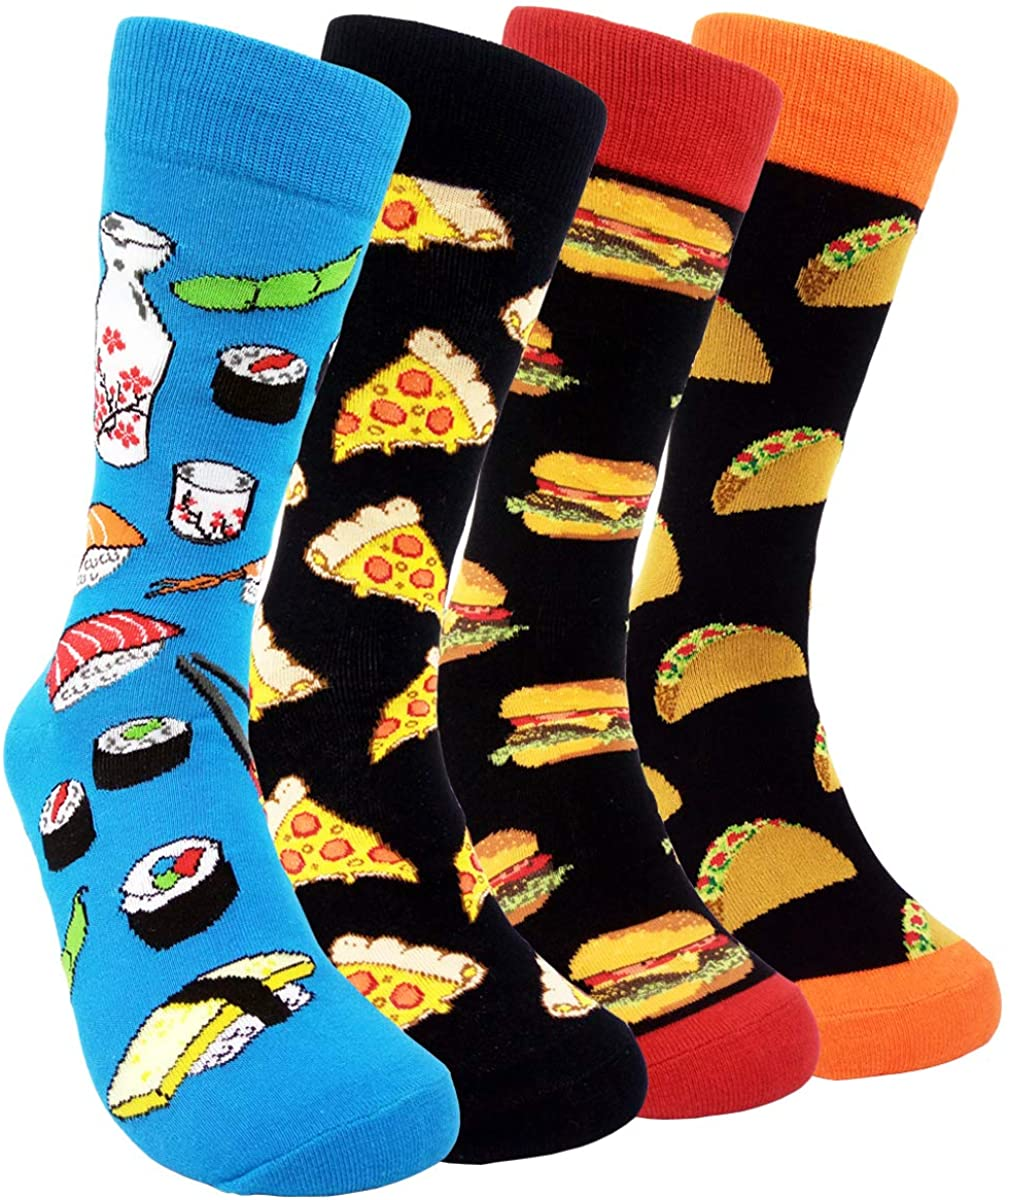 Top 9 Food Themed Socks